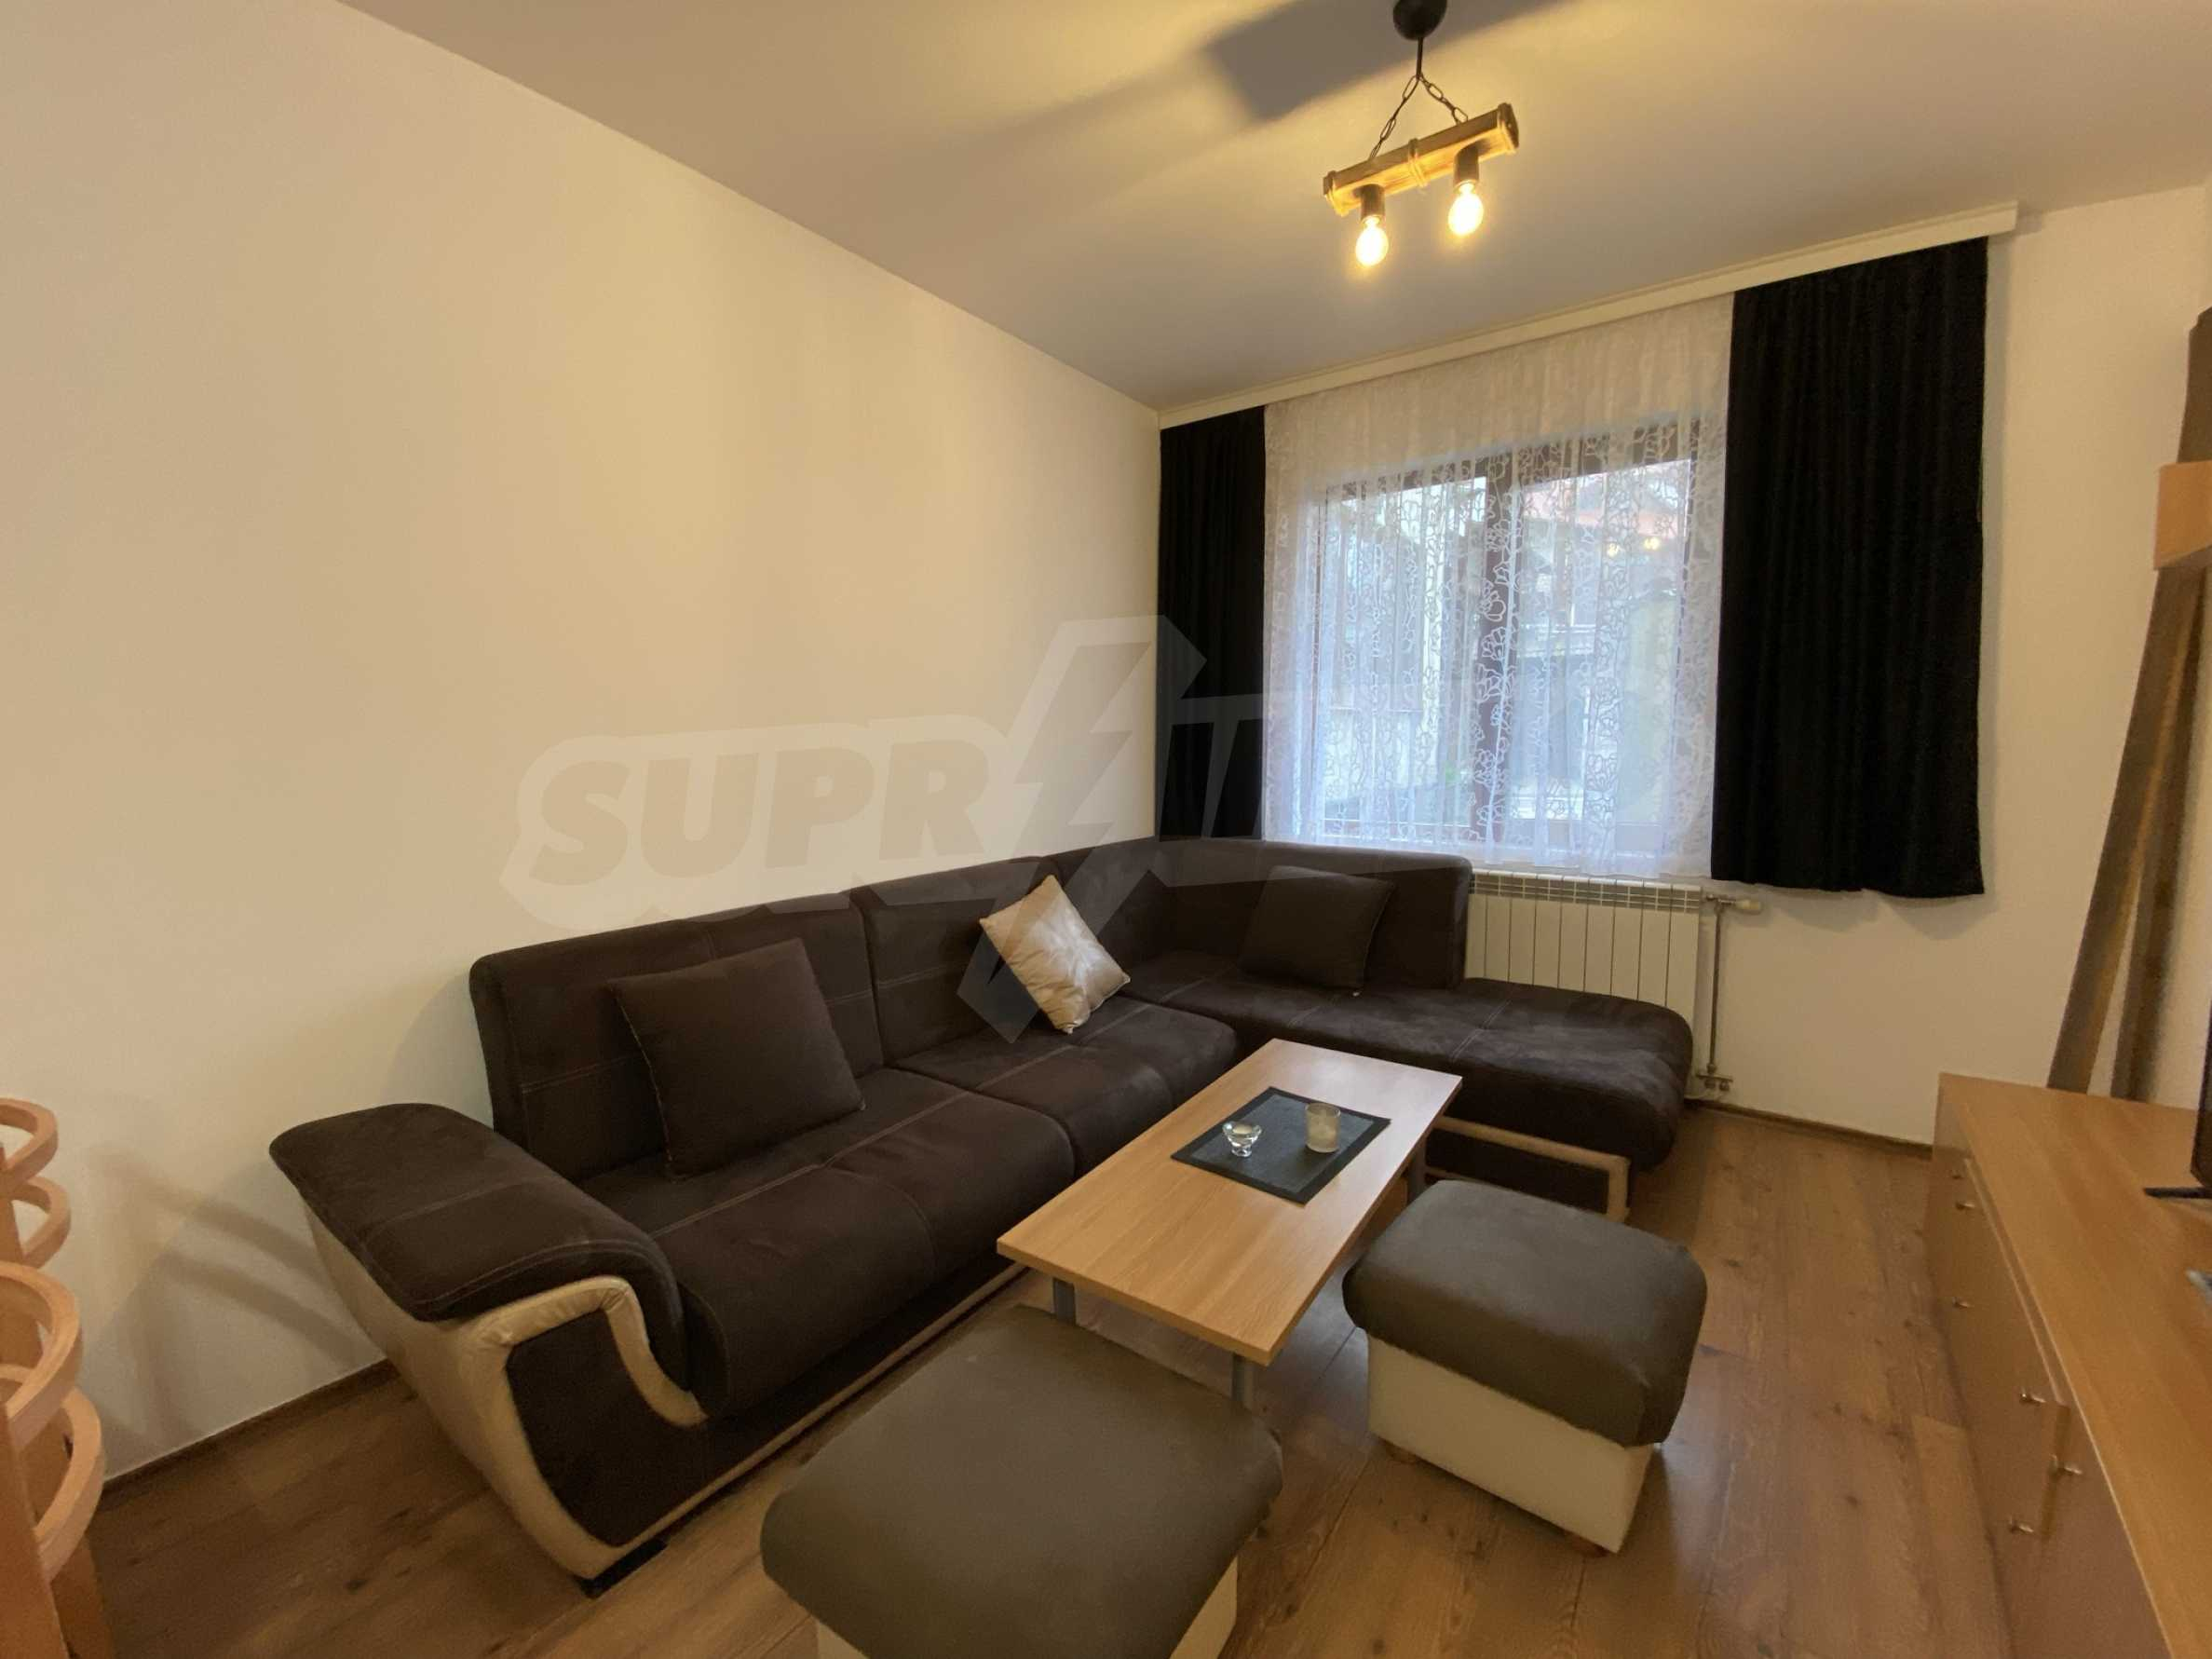 Two-bedroom apartment in a well-maintained building in Bansko 10